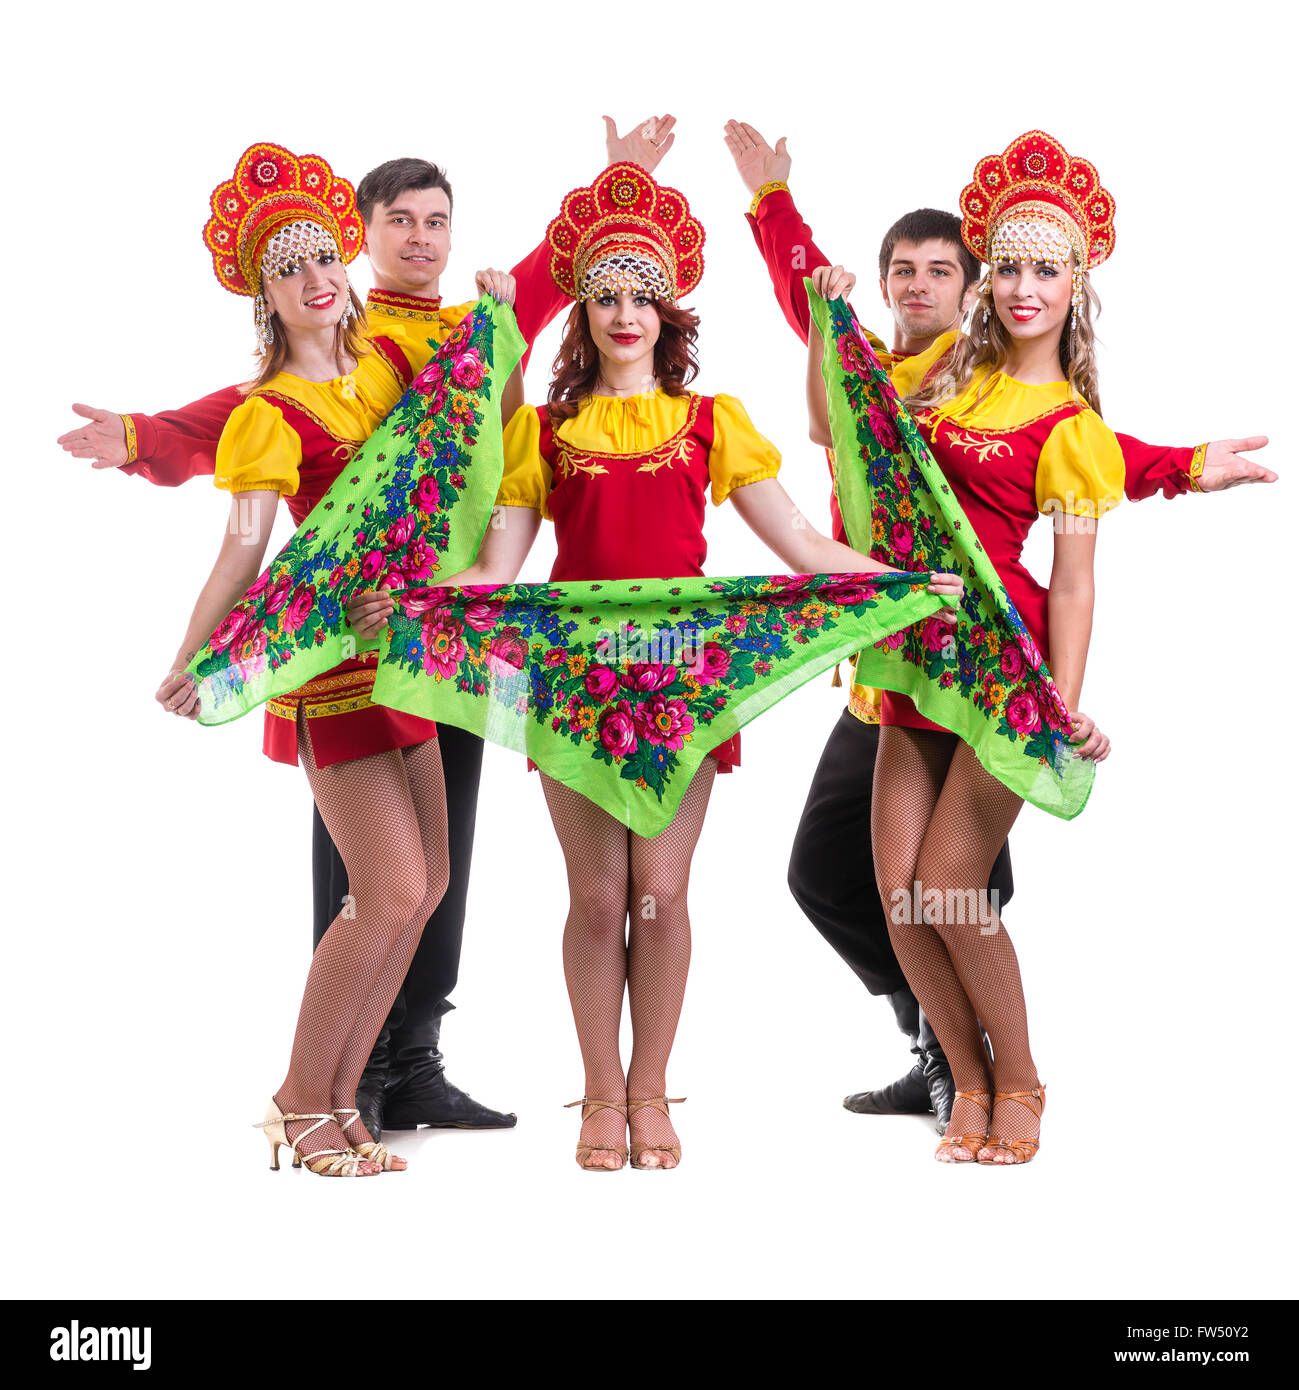 0dfea86e5 Russian Folk Dancer Cut Out Stock Images & Pictures - Page 2 - Alamy